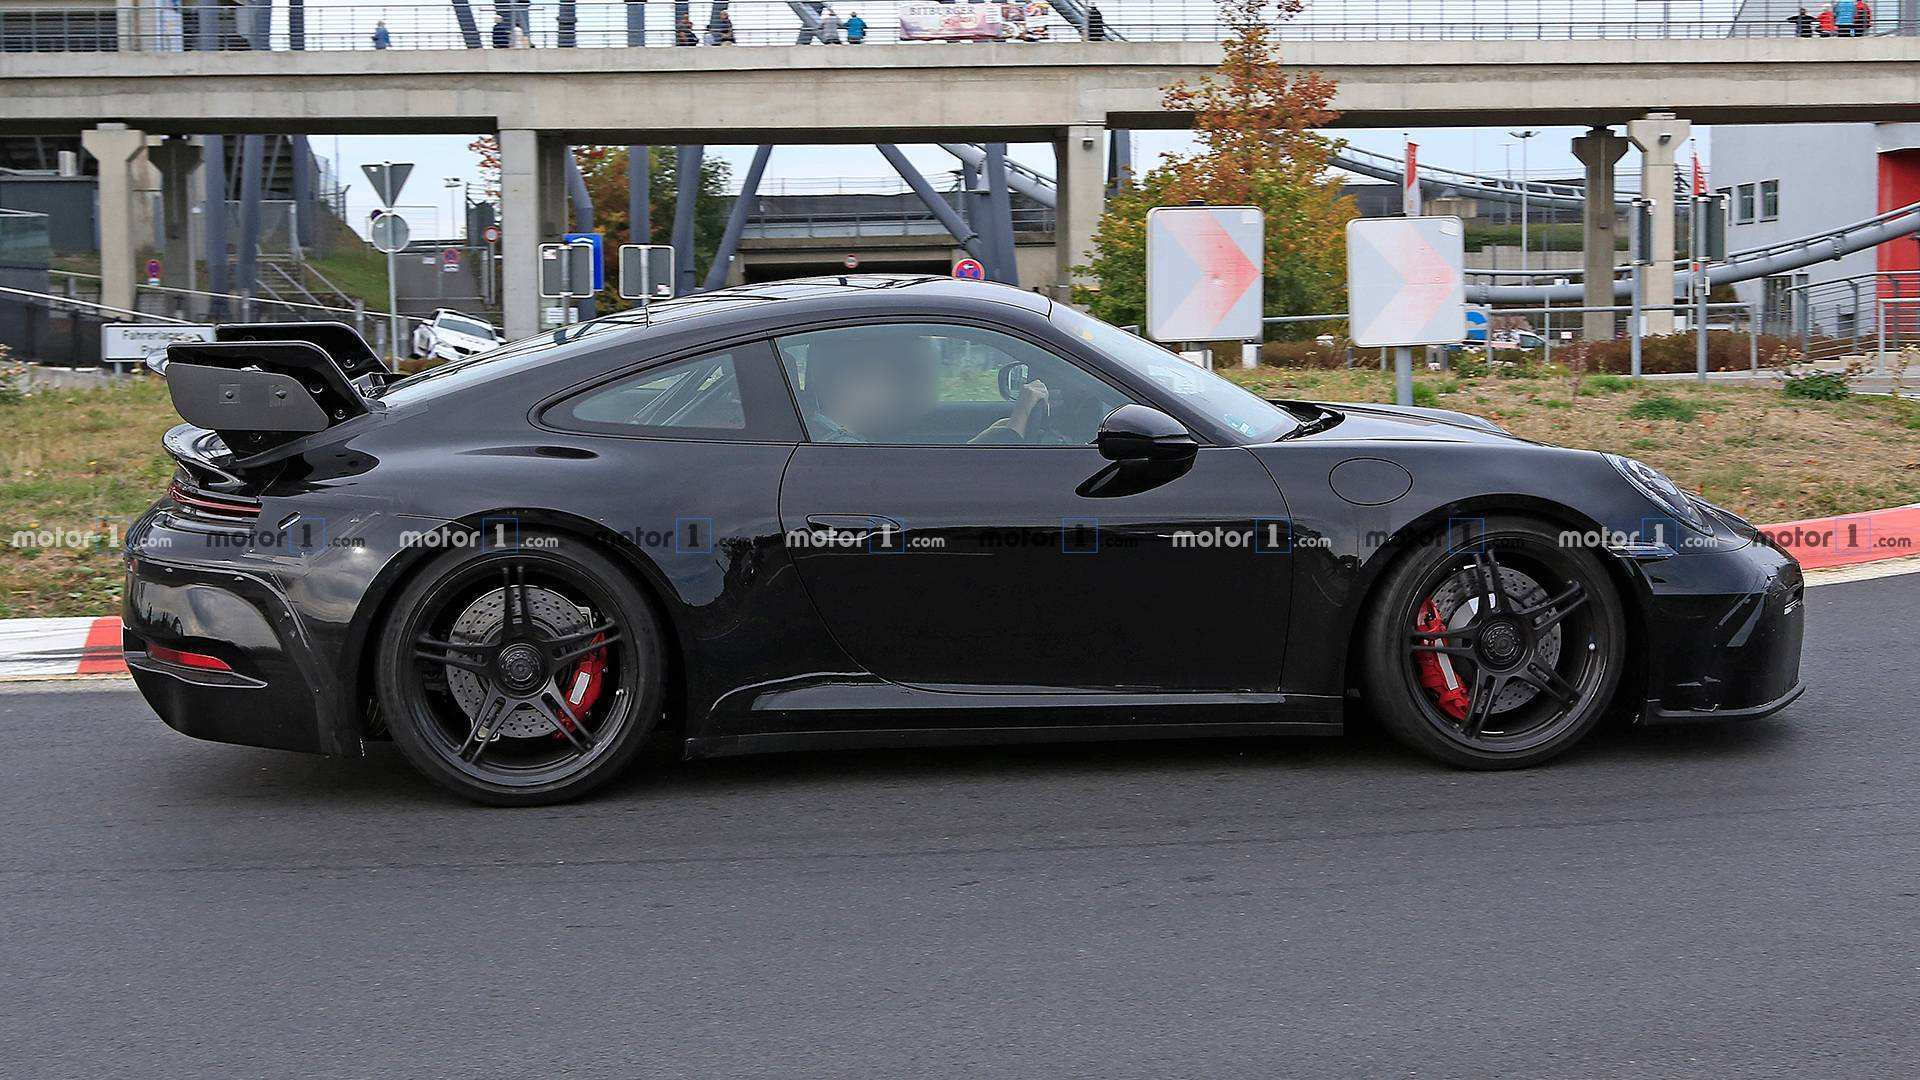 92 All New 2020 Porsche Gt3 Rs Reviews with 2020 Porsche Gt3 Rs